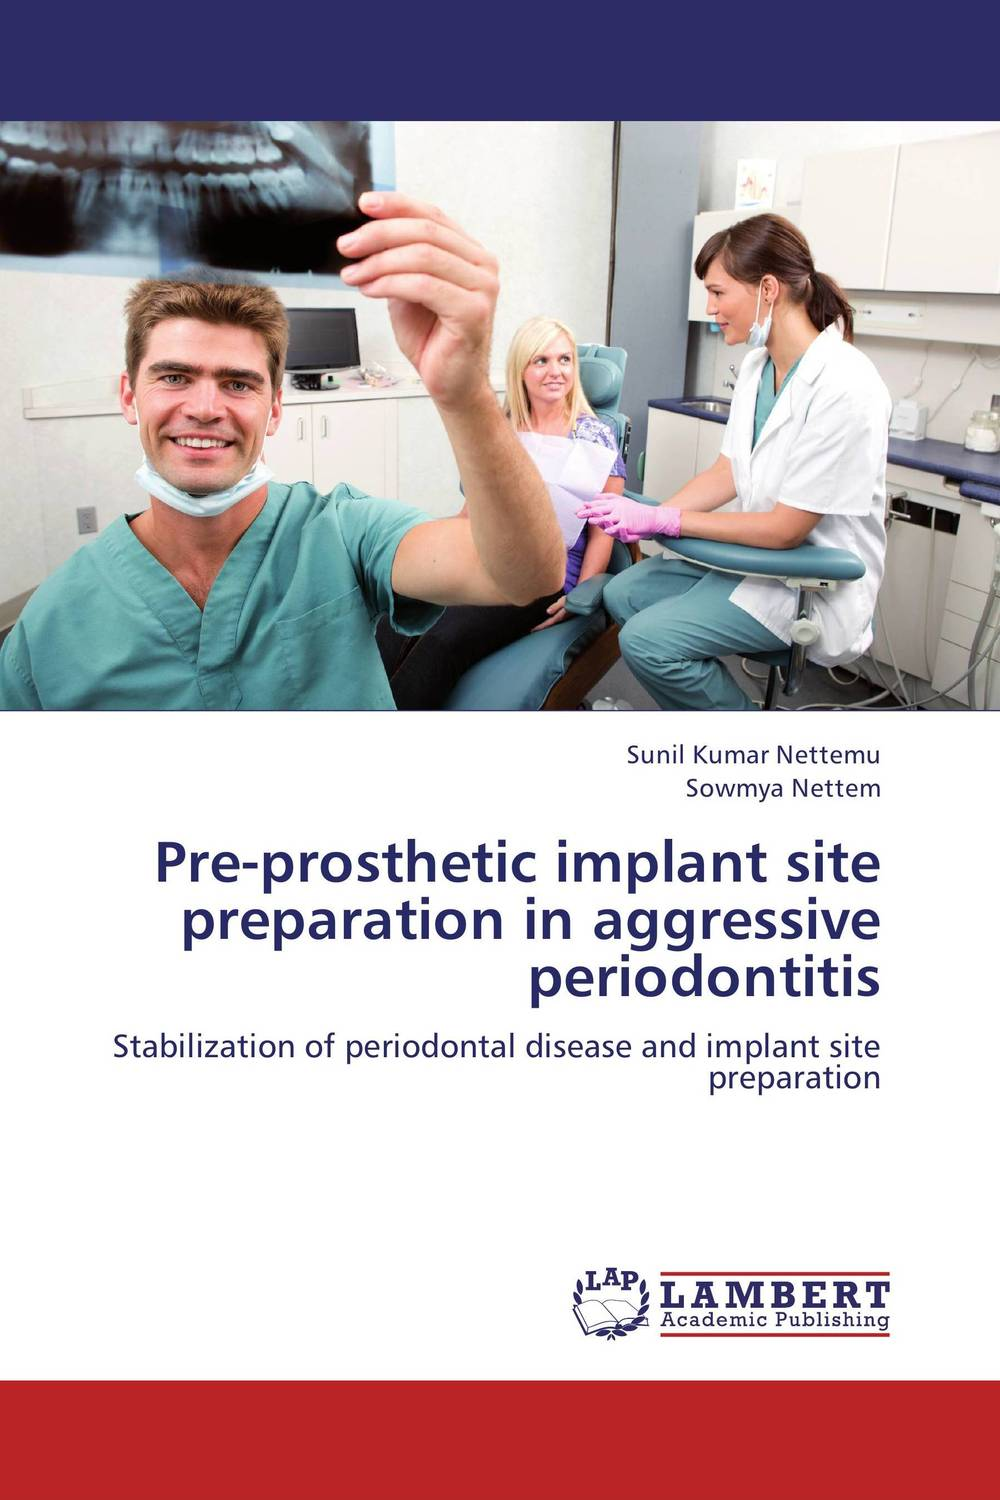 Pre-prosthetic implant site preparation in aggressive periodontitis attachments retaining implant overdentures